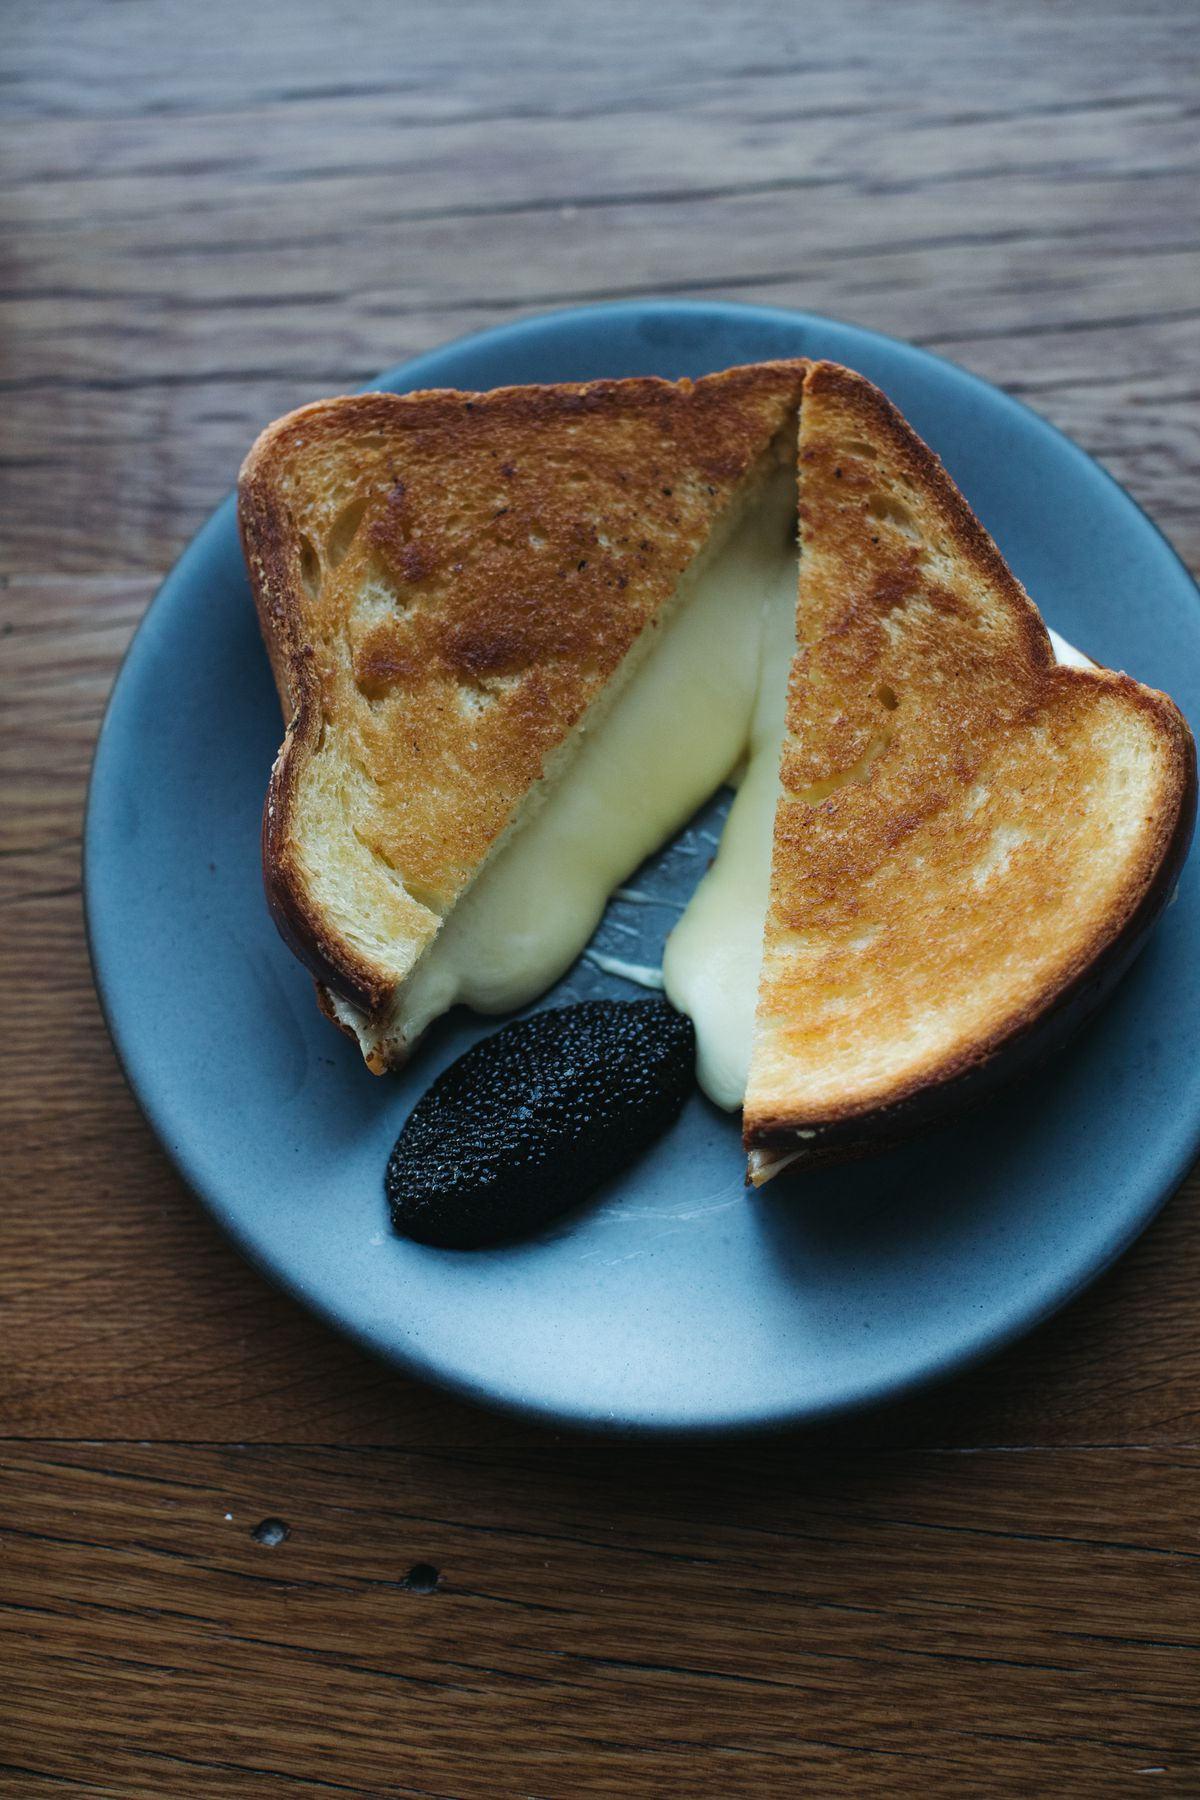 a grilled cheese with caviar on the side